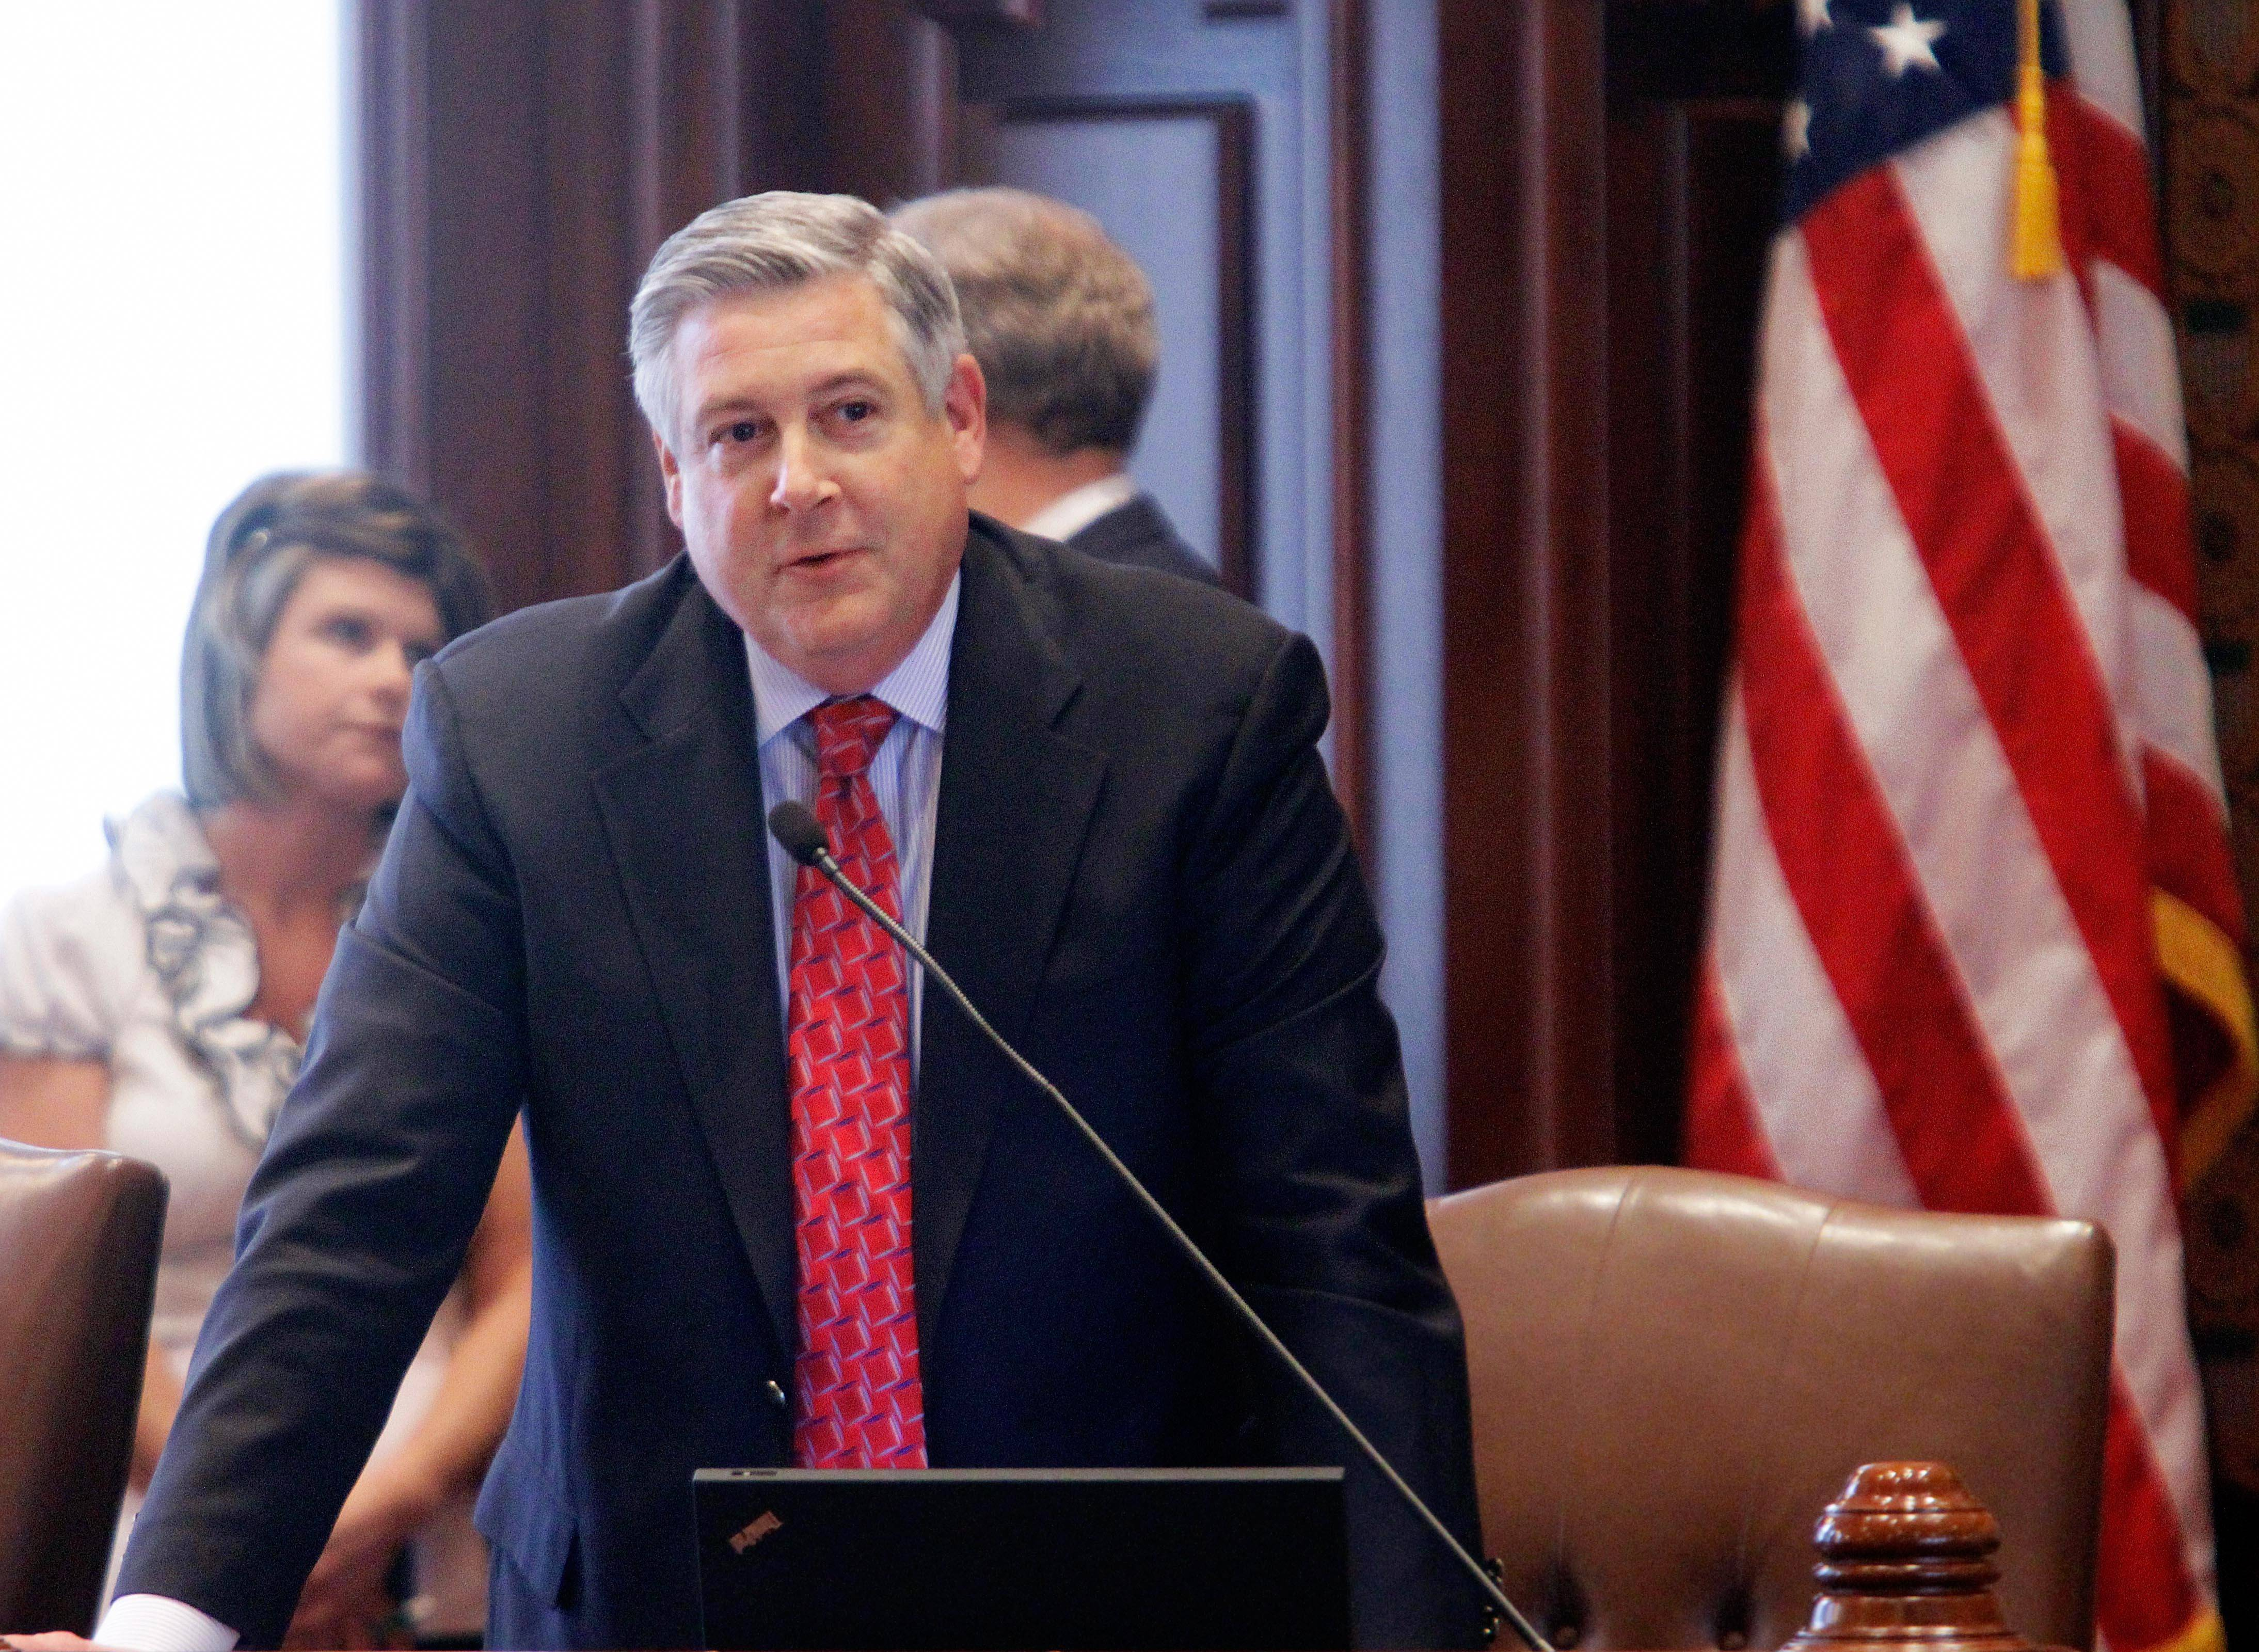 Sen. Kirk Dillard, shown on the Senate floor, could be the new RTA chairman.